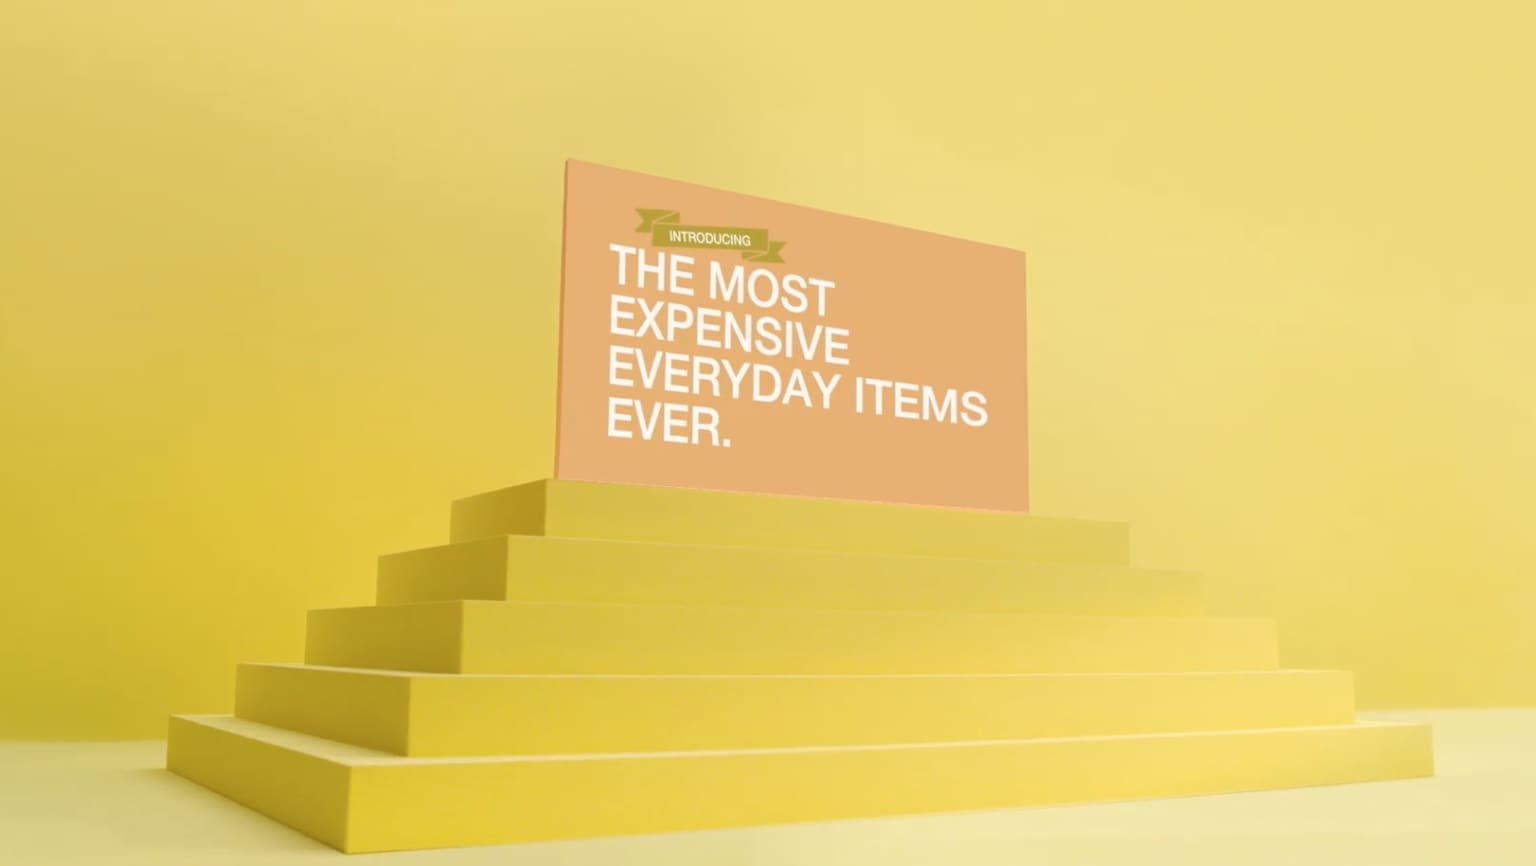 The most expensive everyday items ever